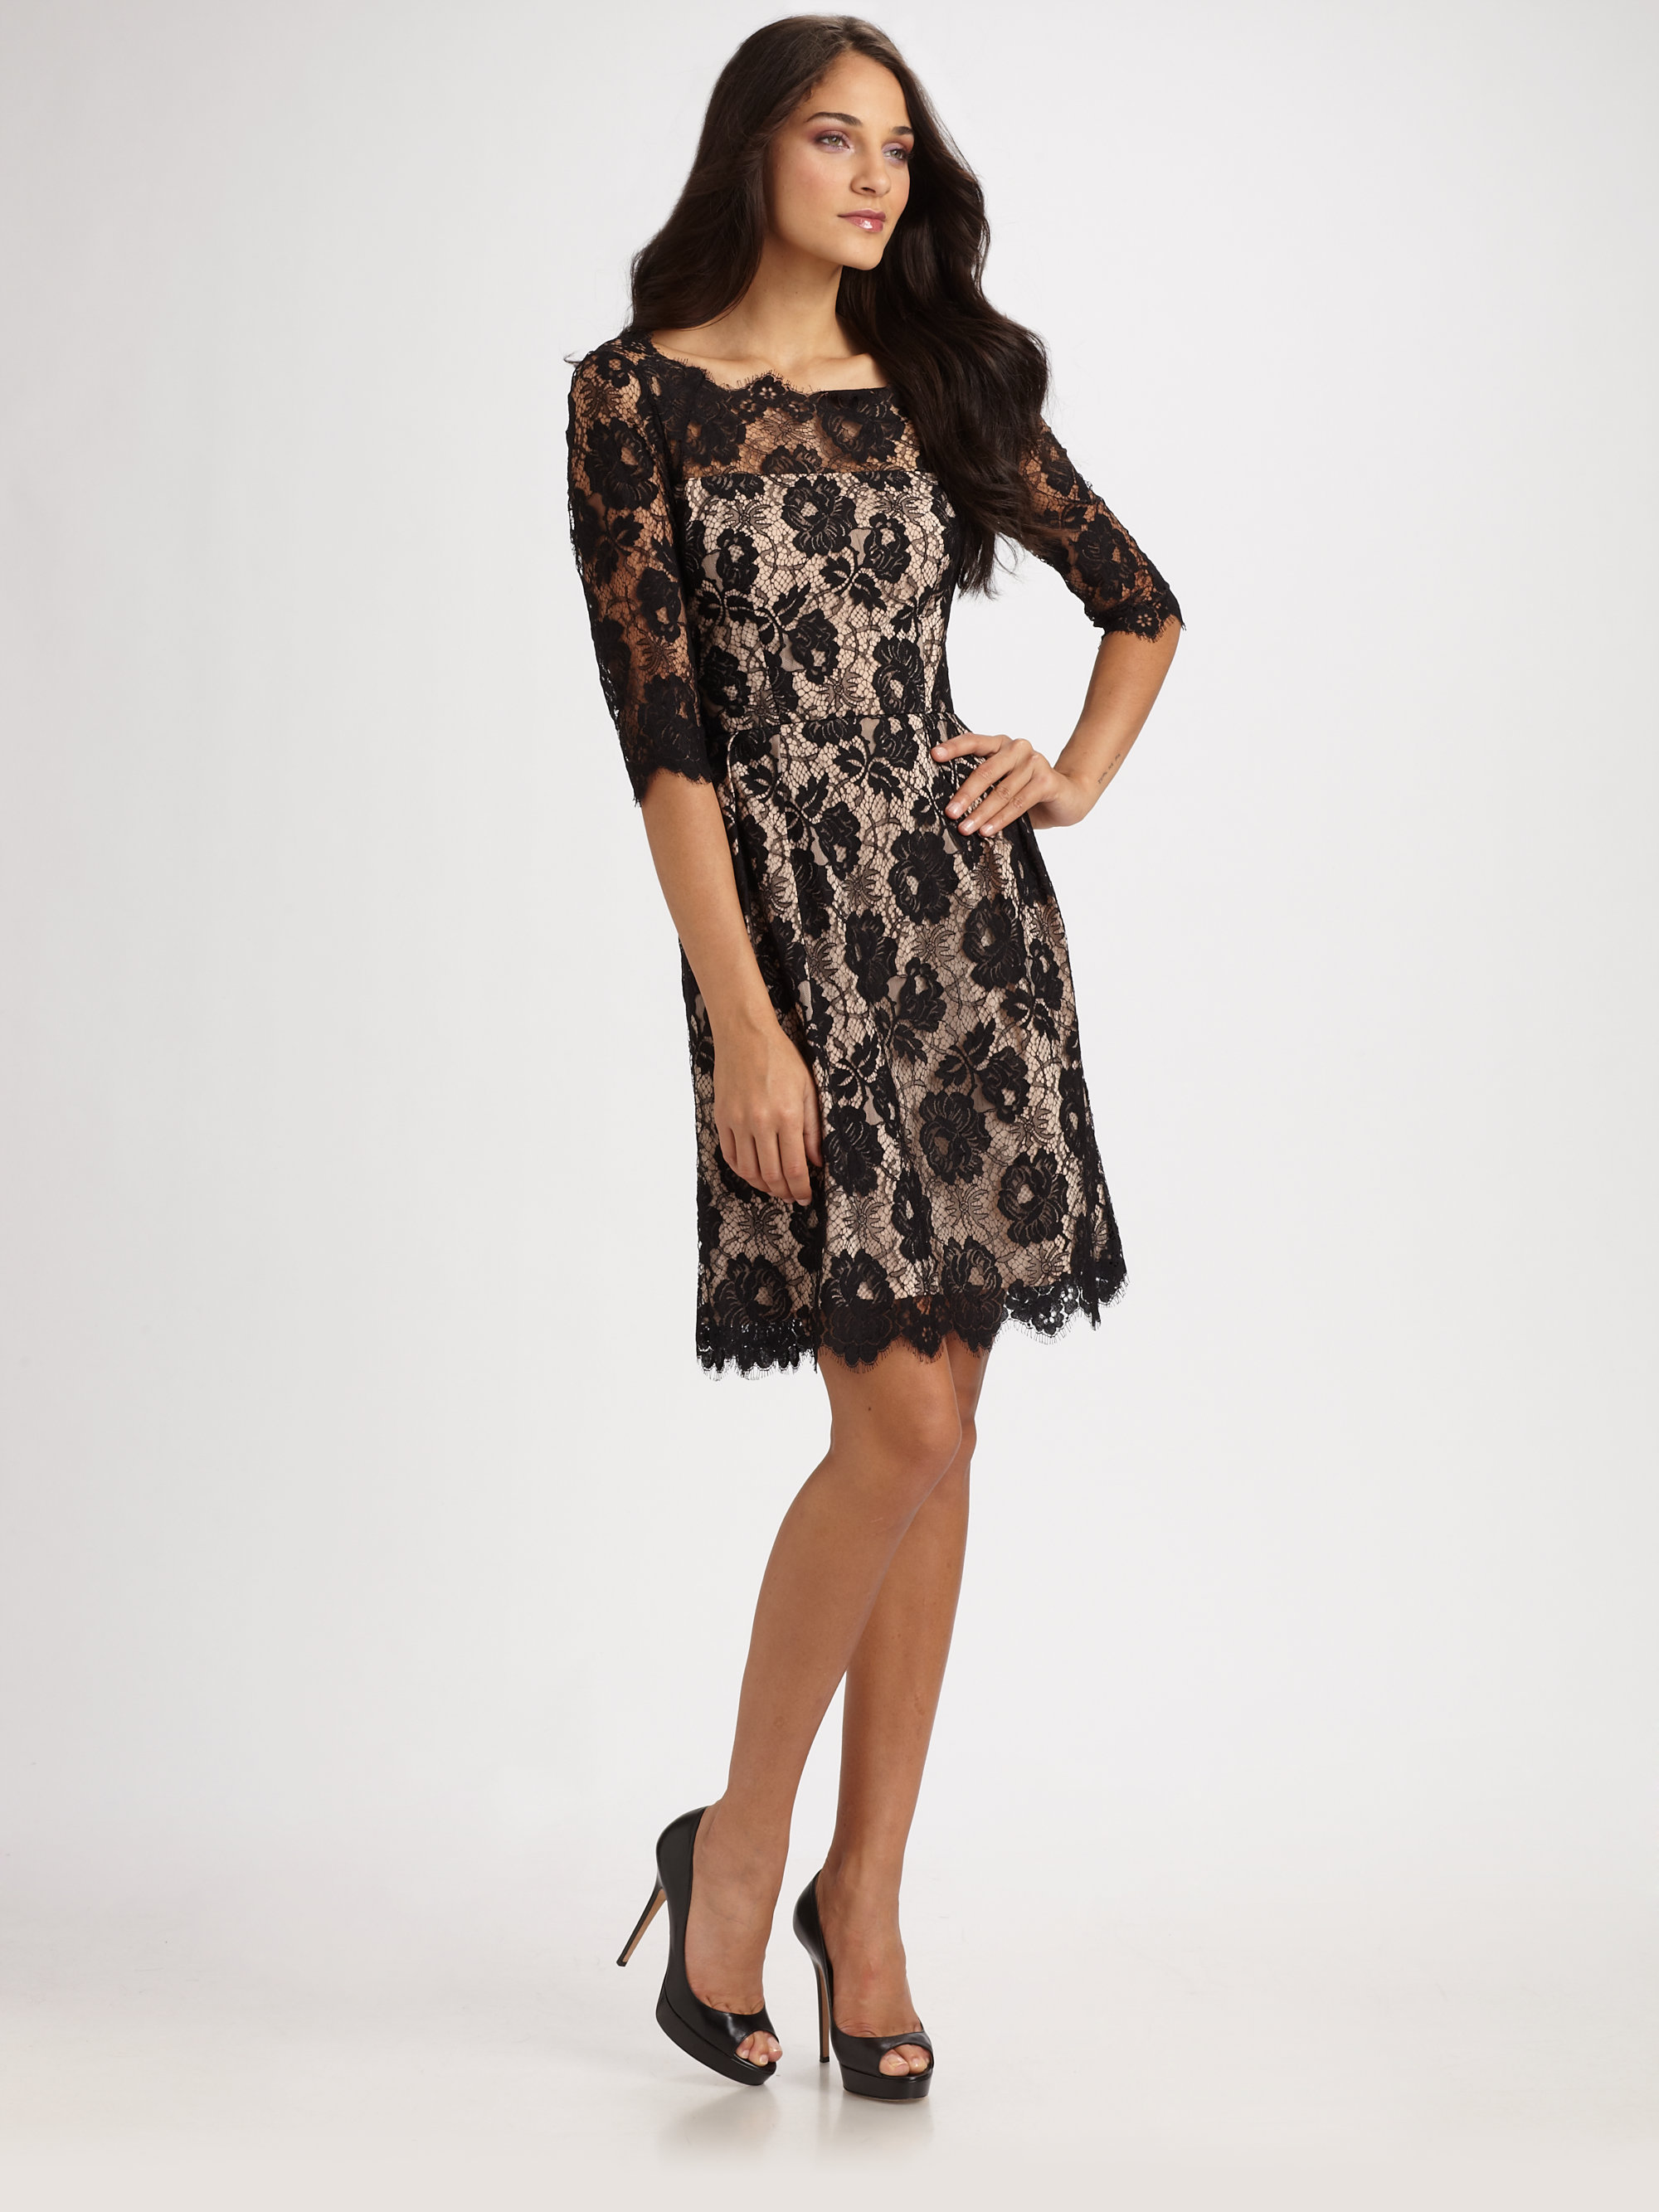 Chandelier lace dress